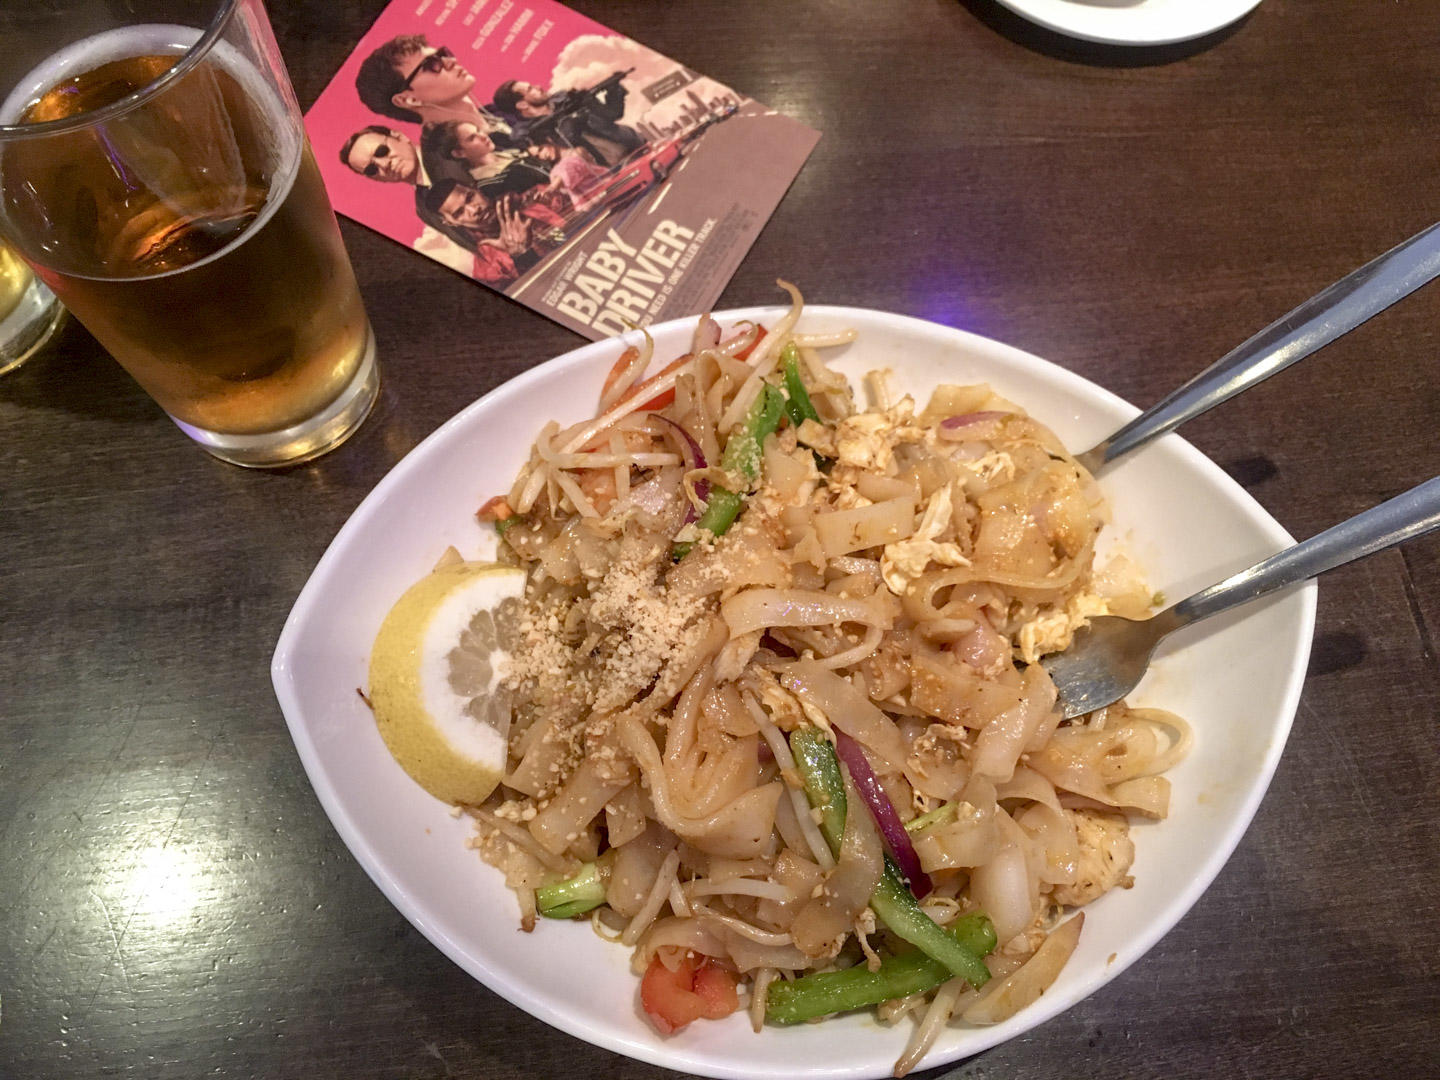 Birds eye view of a pad thai noodle dish with a half pint of king fisher beer.